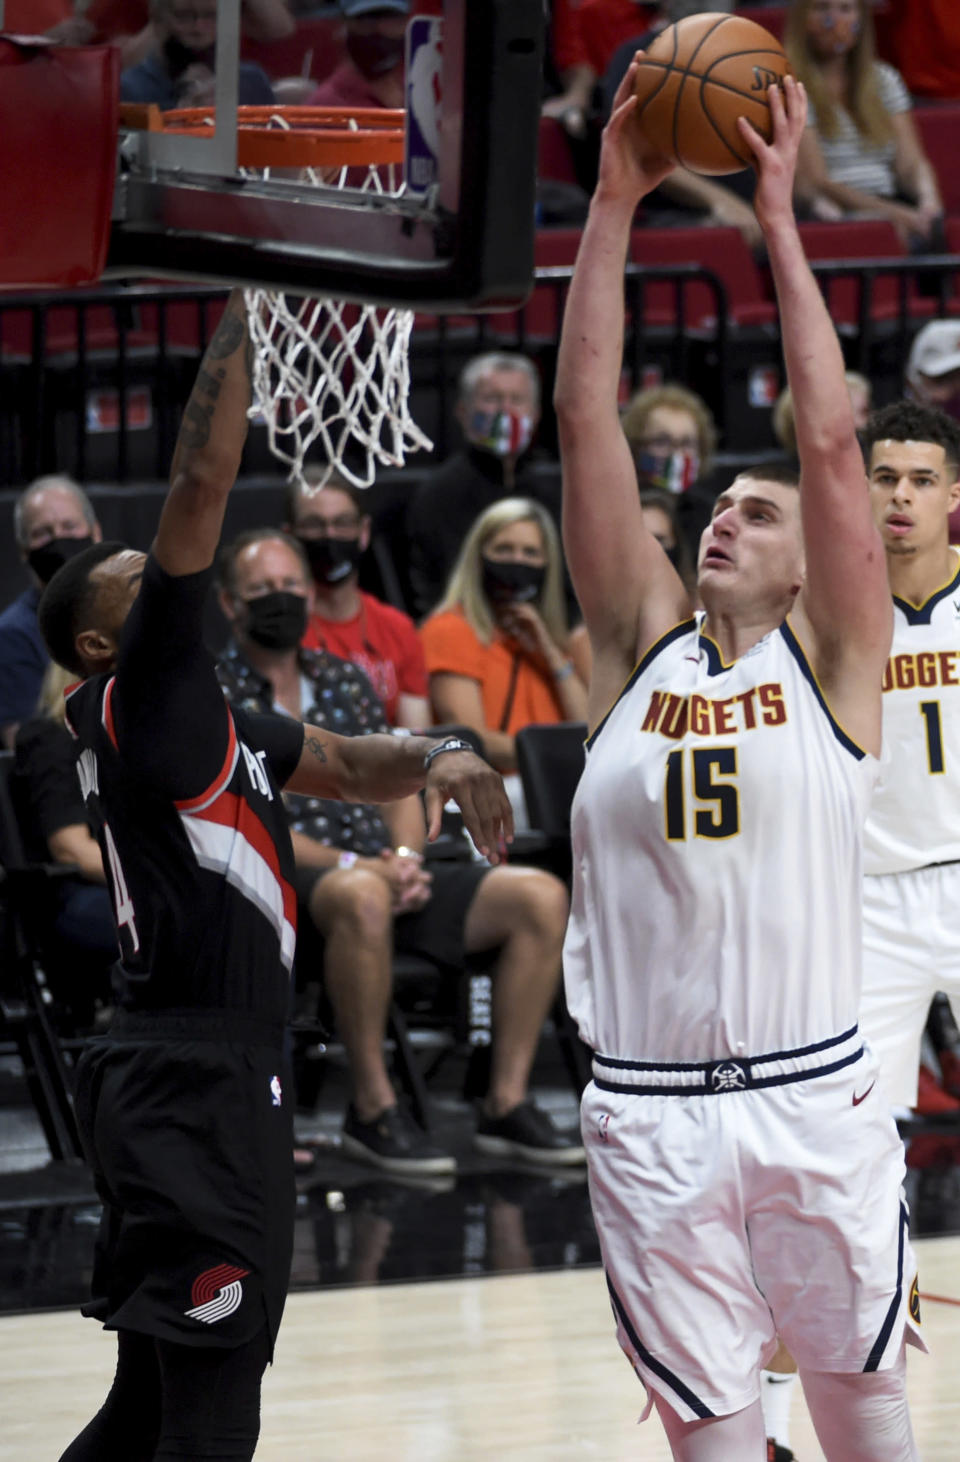 Denver Nuggets center Nikola Jokic, right, goes up for a dunk on Portland Trail Blazers forward Norman Powell, left during the first half of Game 4 of an NBA basketball first-round playoff series in Portland, Ore., Thursday, May 29, 2021. (AP Photo/Steve Dykes)